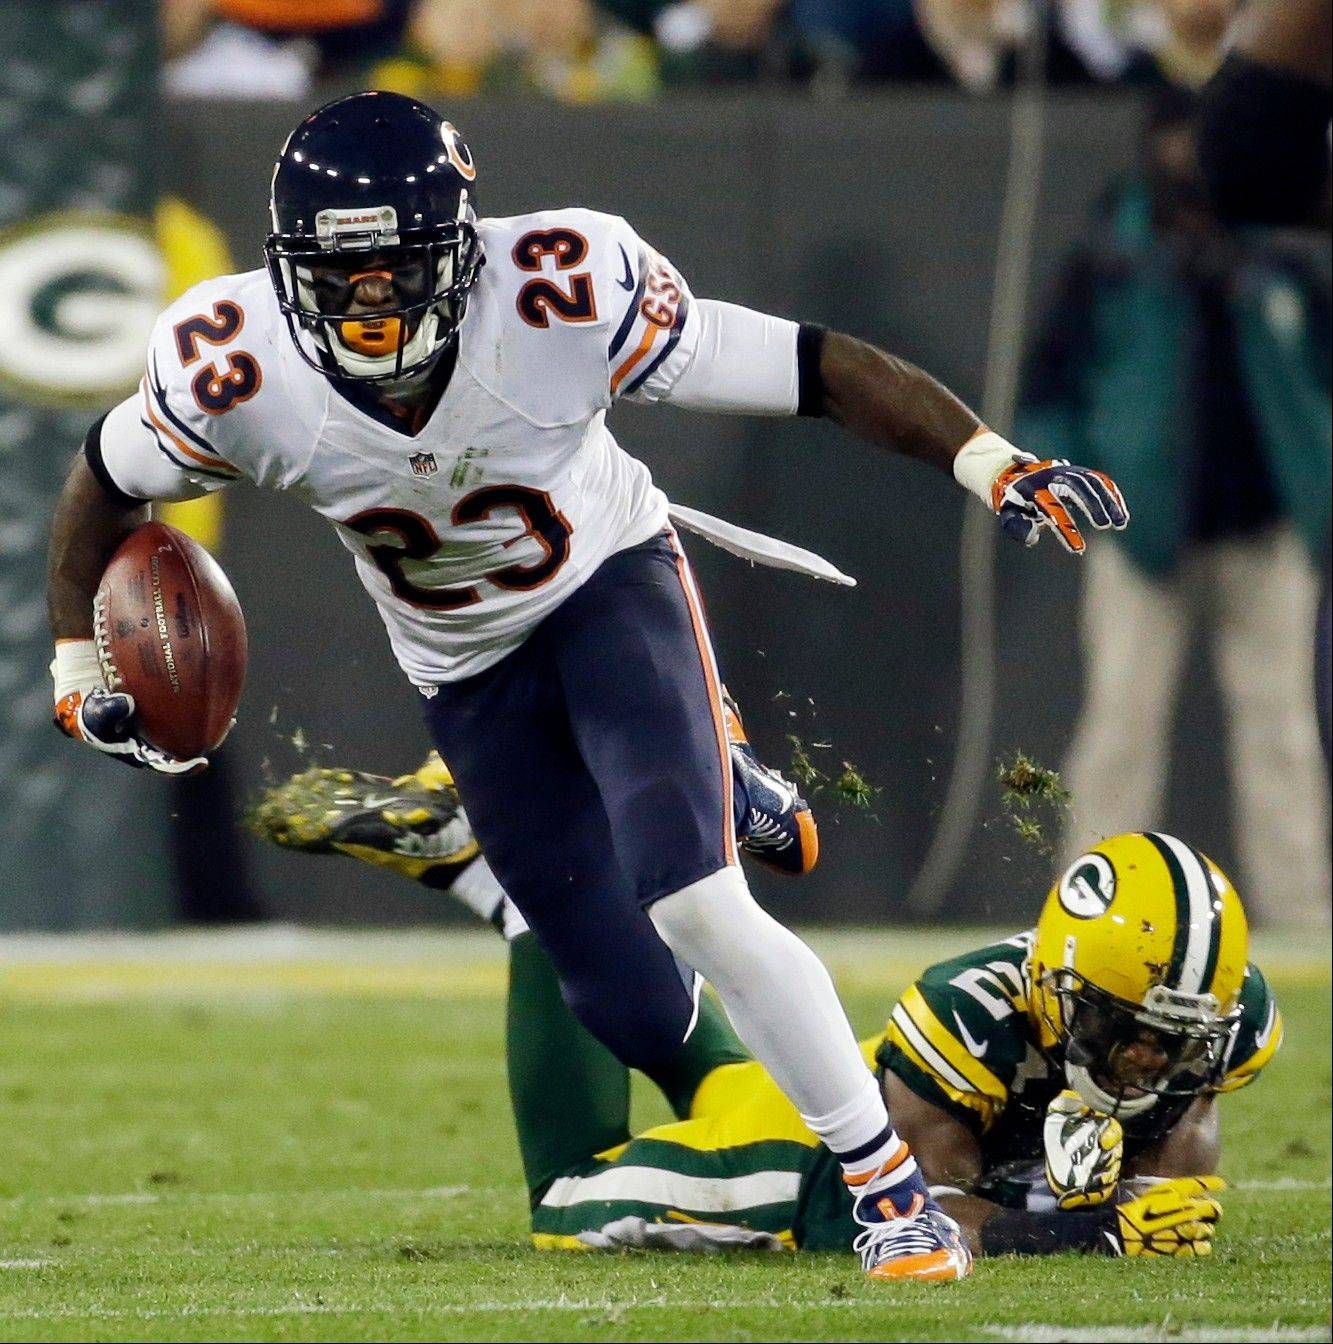 The Bears' Devin Hester tries to get past Green Bay Packers' Jarrett Bush on a punt return in the Nov. 4 game. Back in May, Hester raced a cheetah for a documentary.